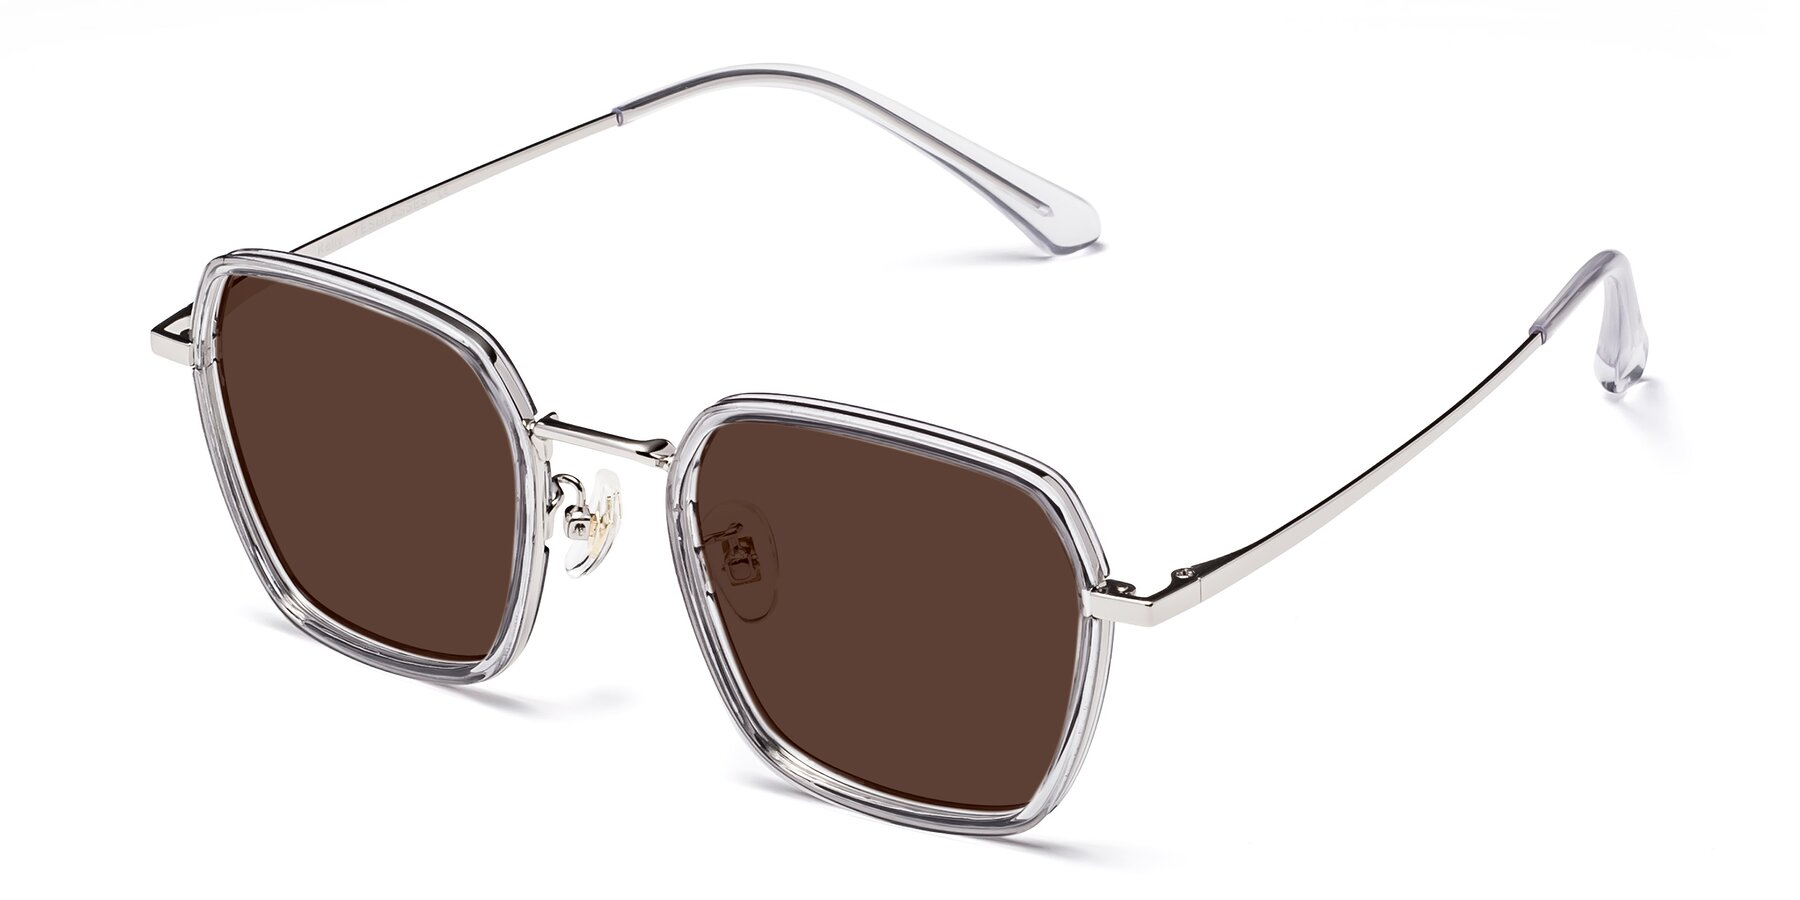 Angle of Kelly in Light Gray-Silver with Brown Tinted Lenses